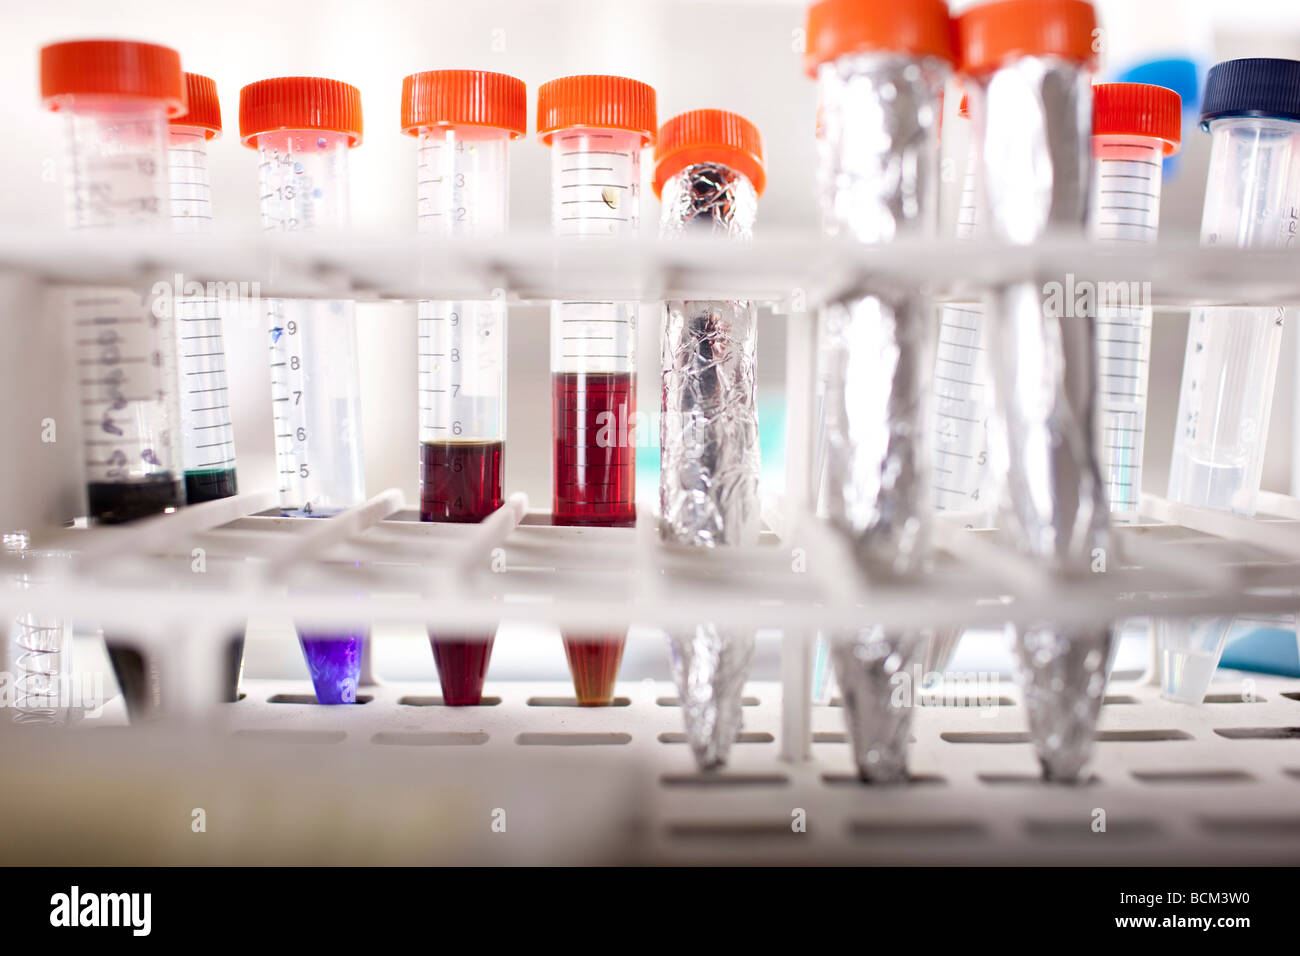 Laboratory test tubes - Stock Image